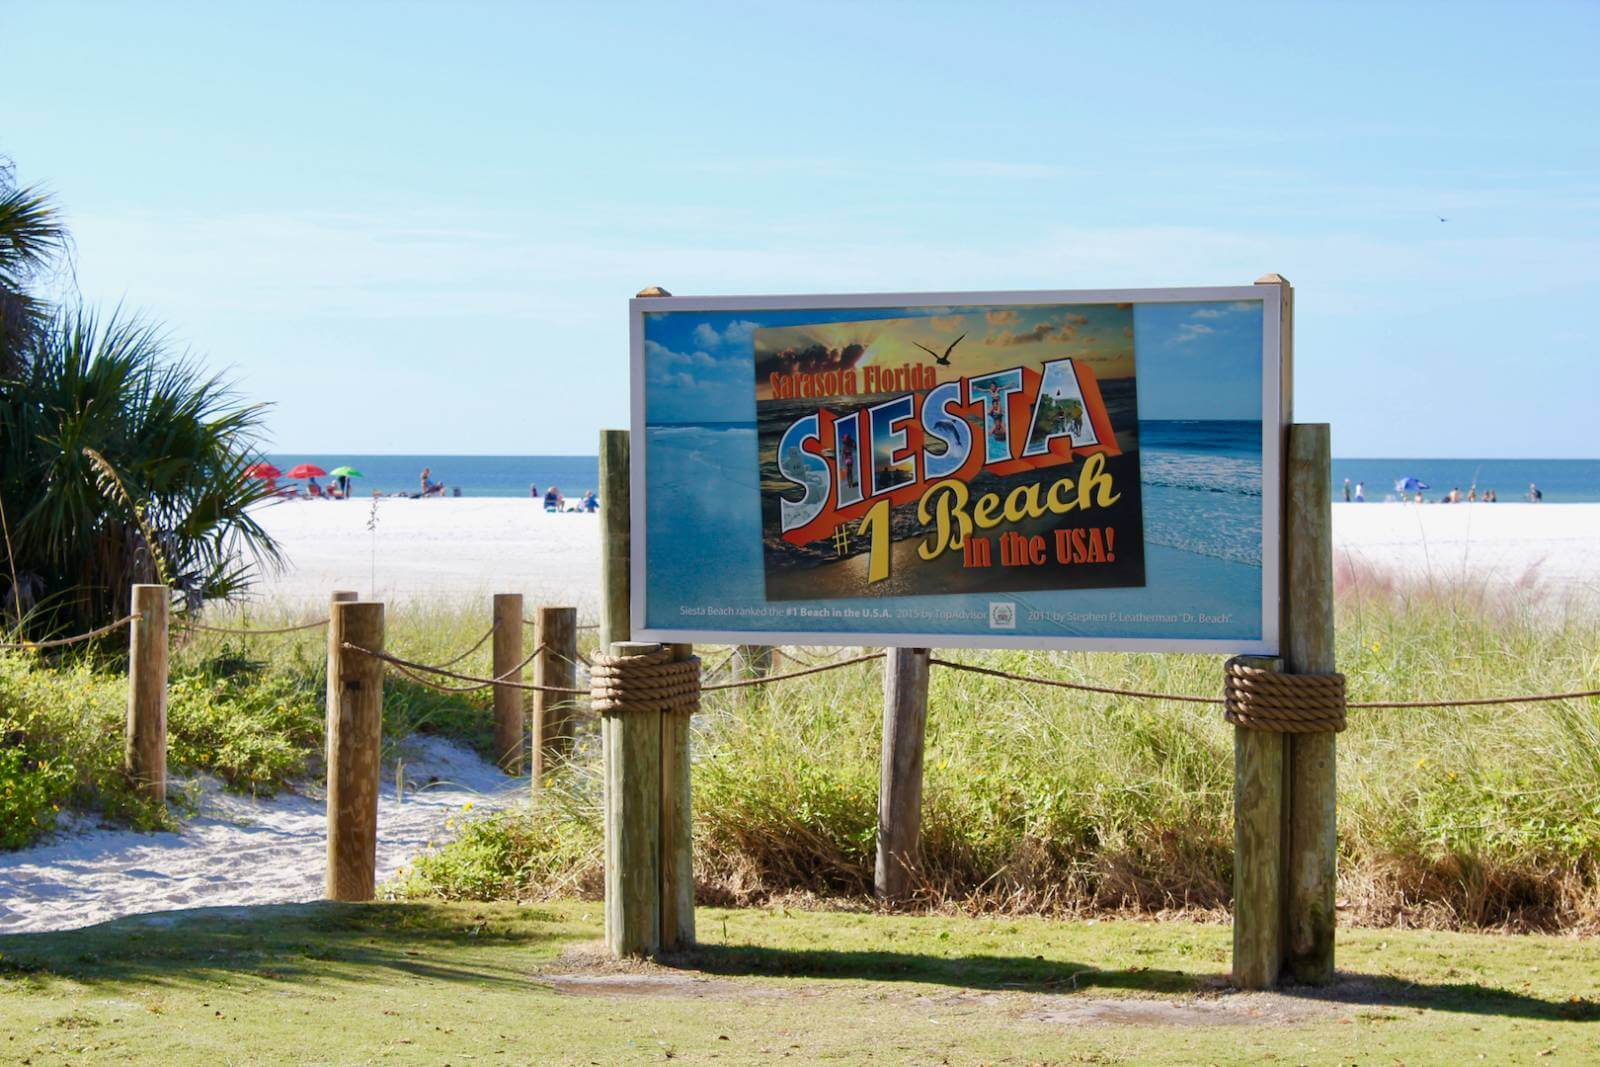 Siesta Key stretches for eight miles along the coast of Sarasota County but it covers just 2.4 square miles of land! Siesta Beach is regarded as one of the best beaches in the world. #SiestaKey #beachvacation #Florida #SiestaBeach